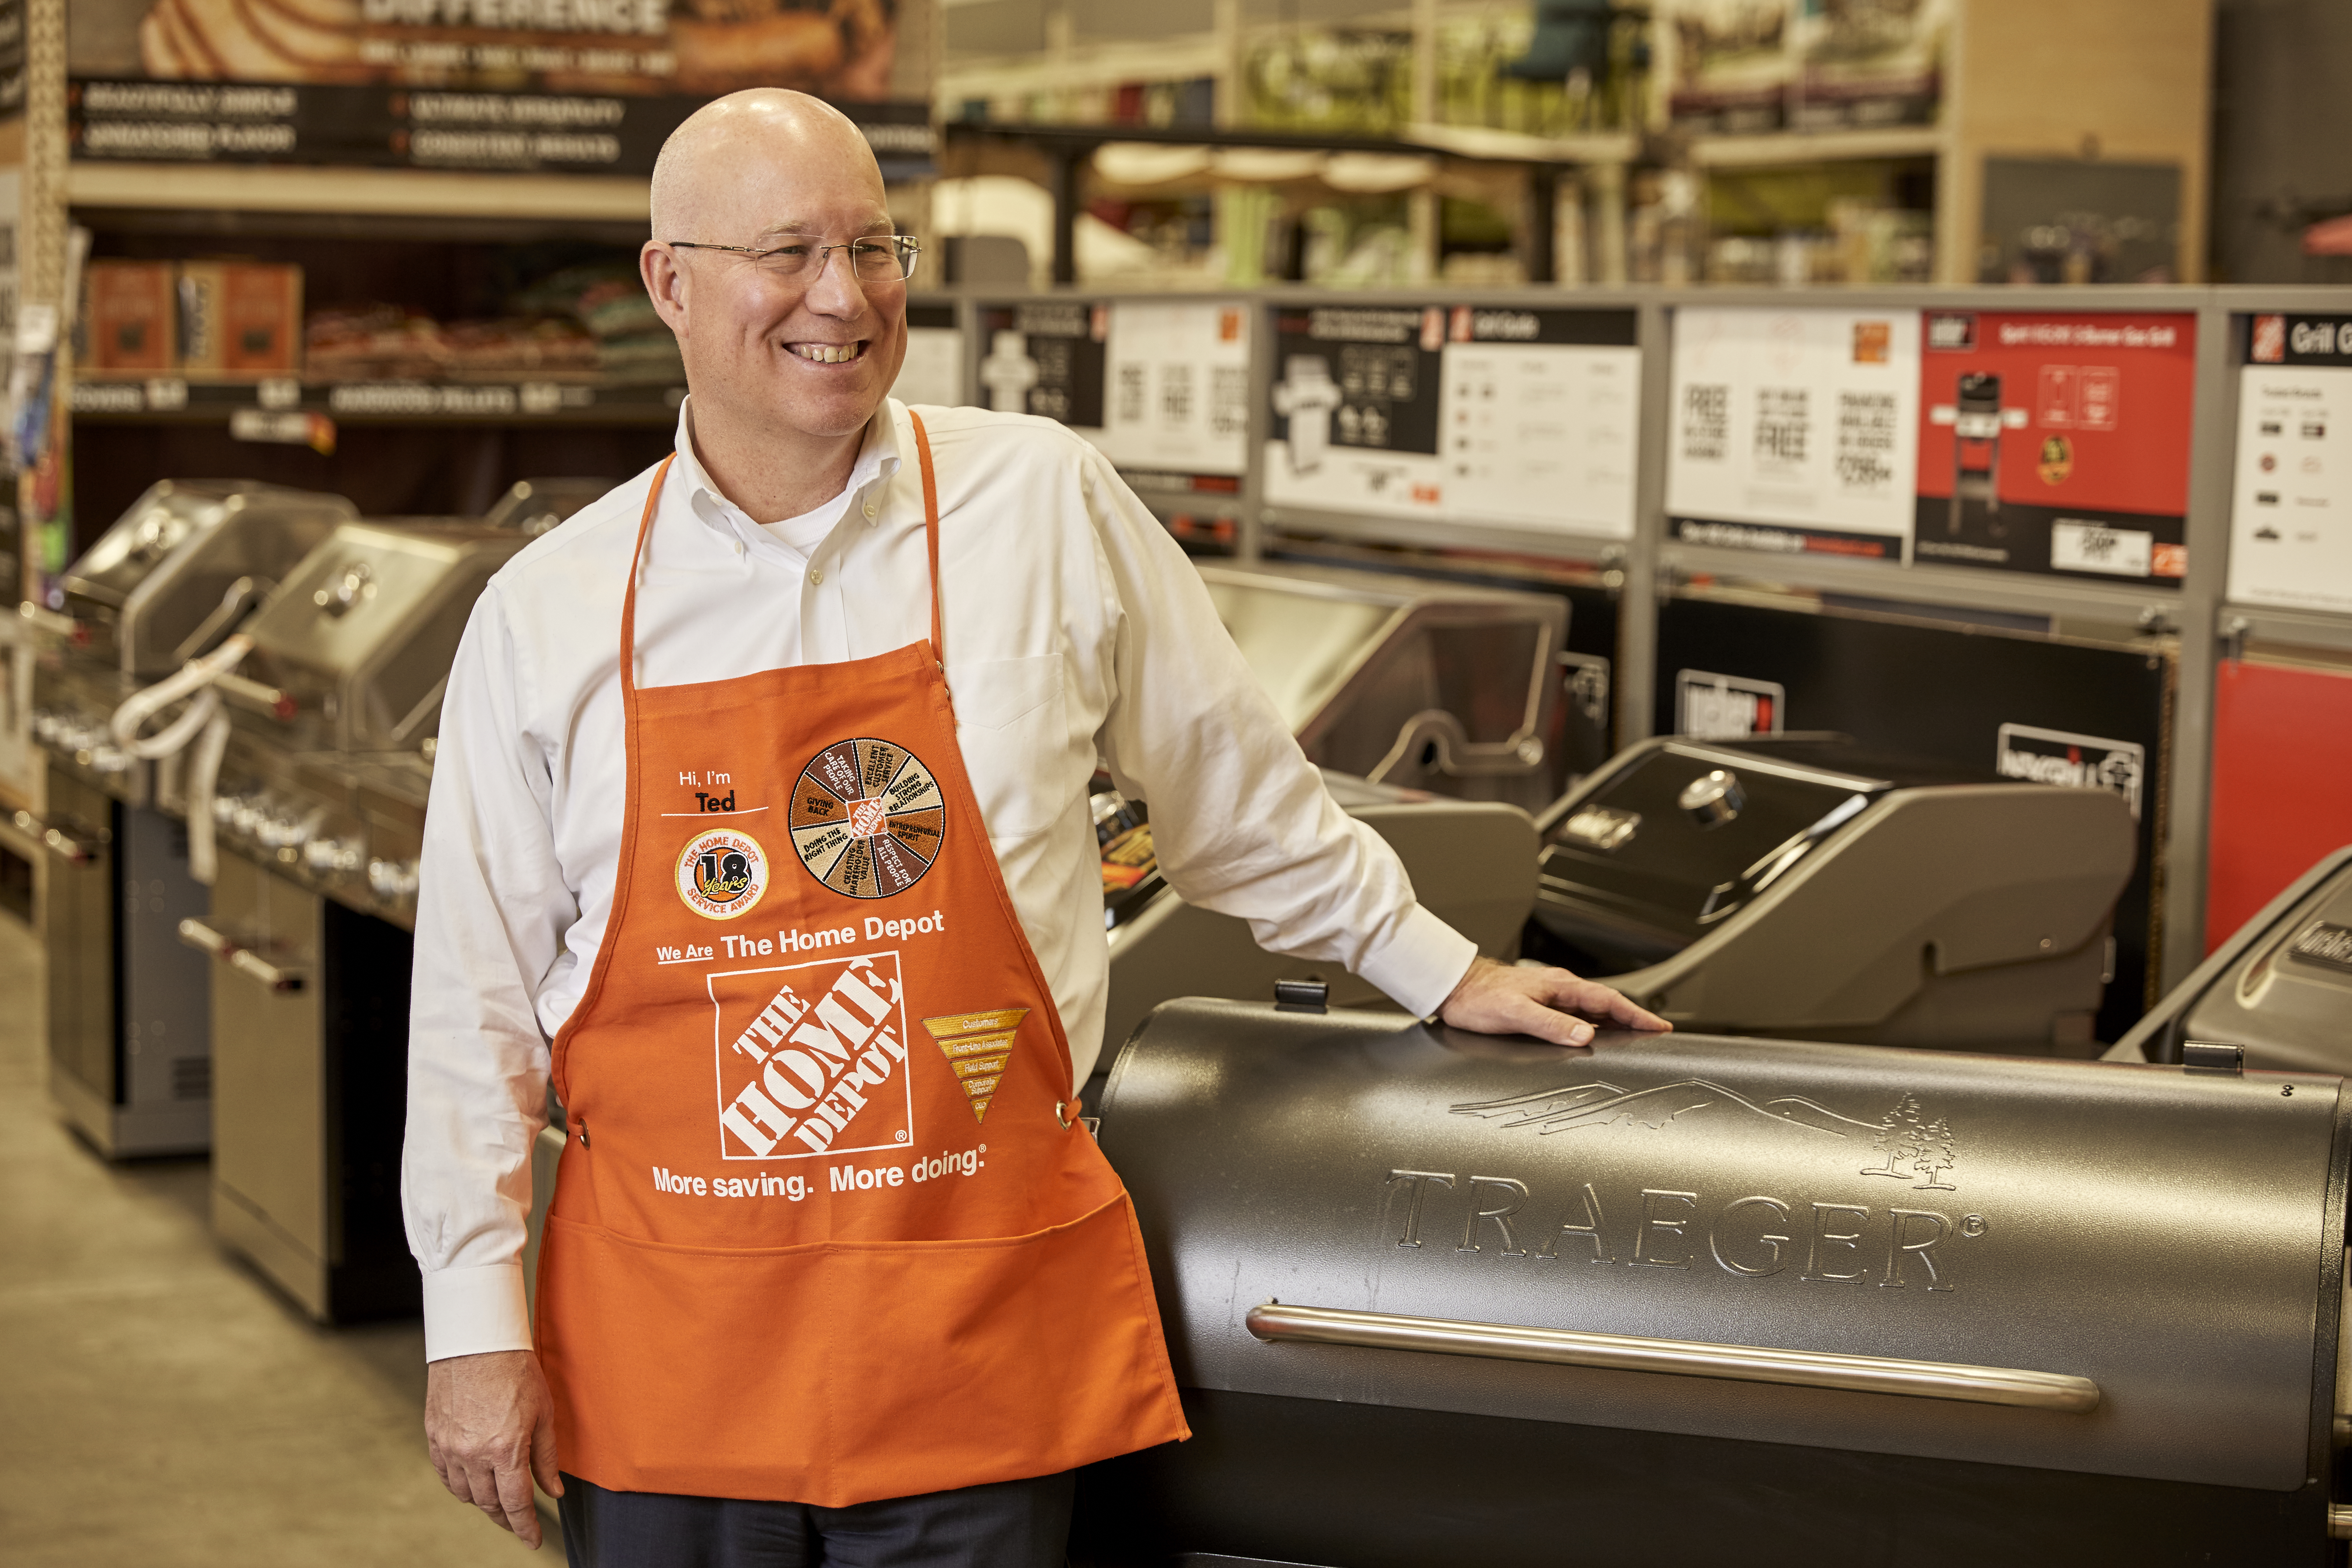 EVP of Merchandising Ted Decker with Traeger grill